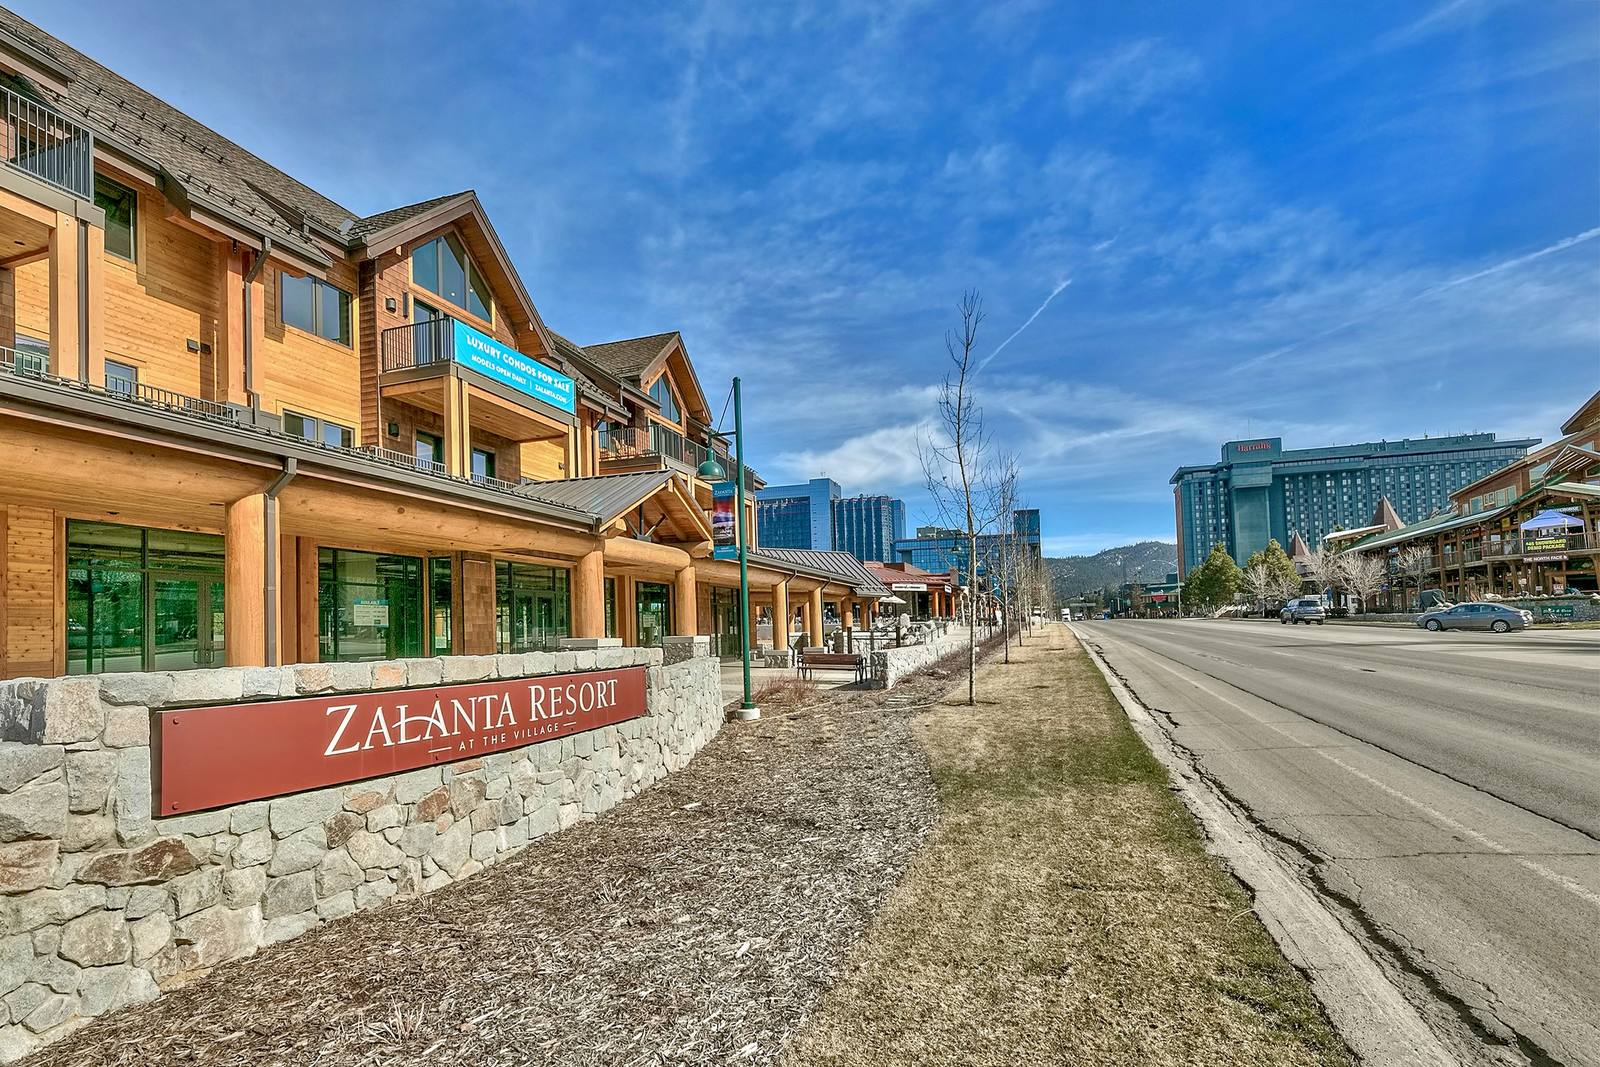 CBRE RetailZalanta4101 Lake Tahoe Blvd  Photo